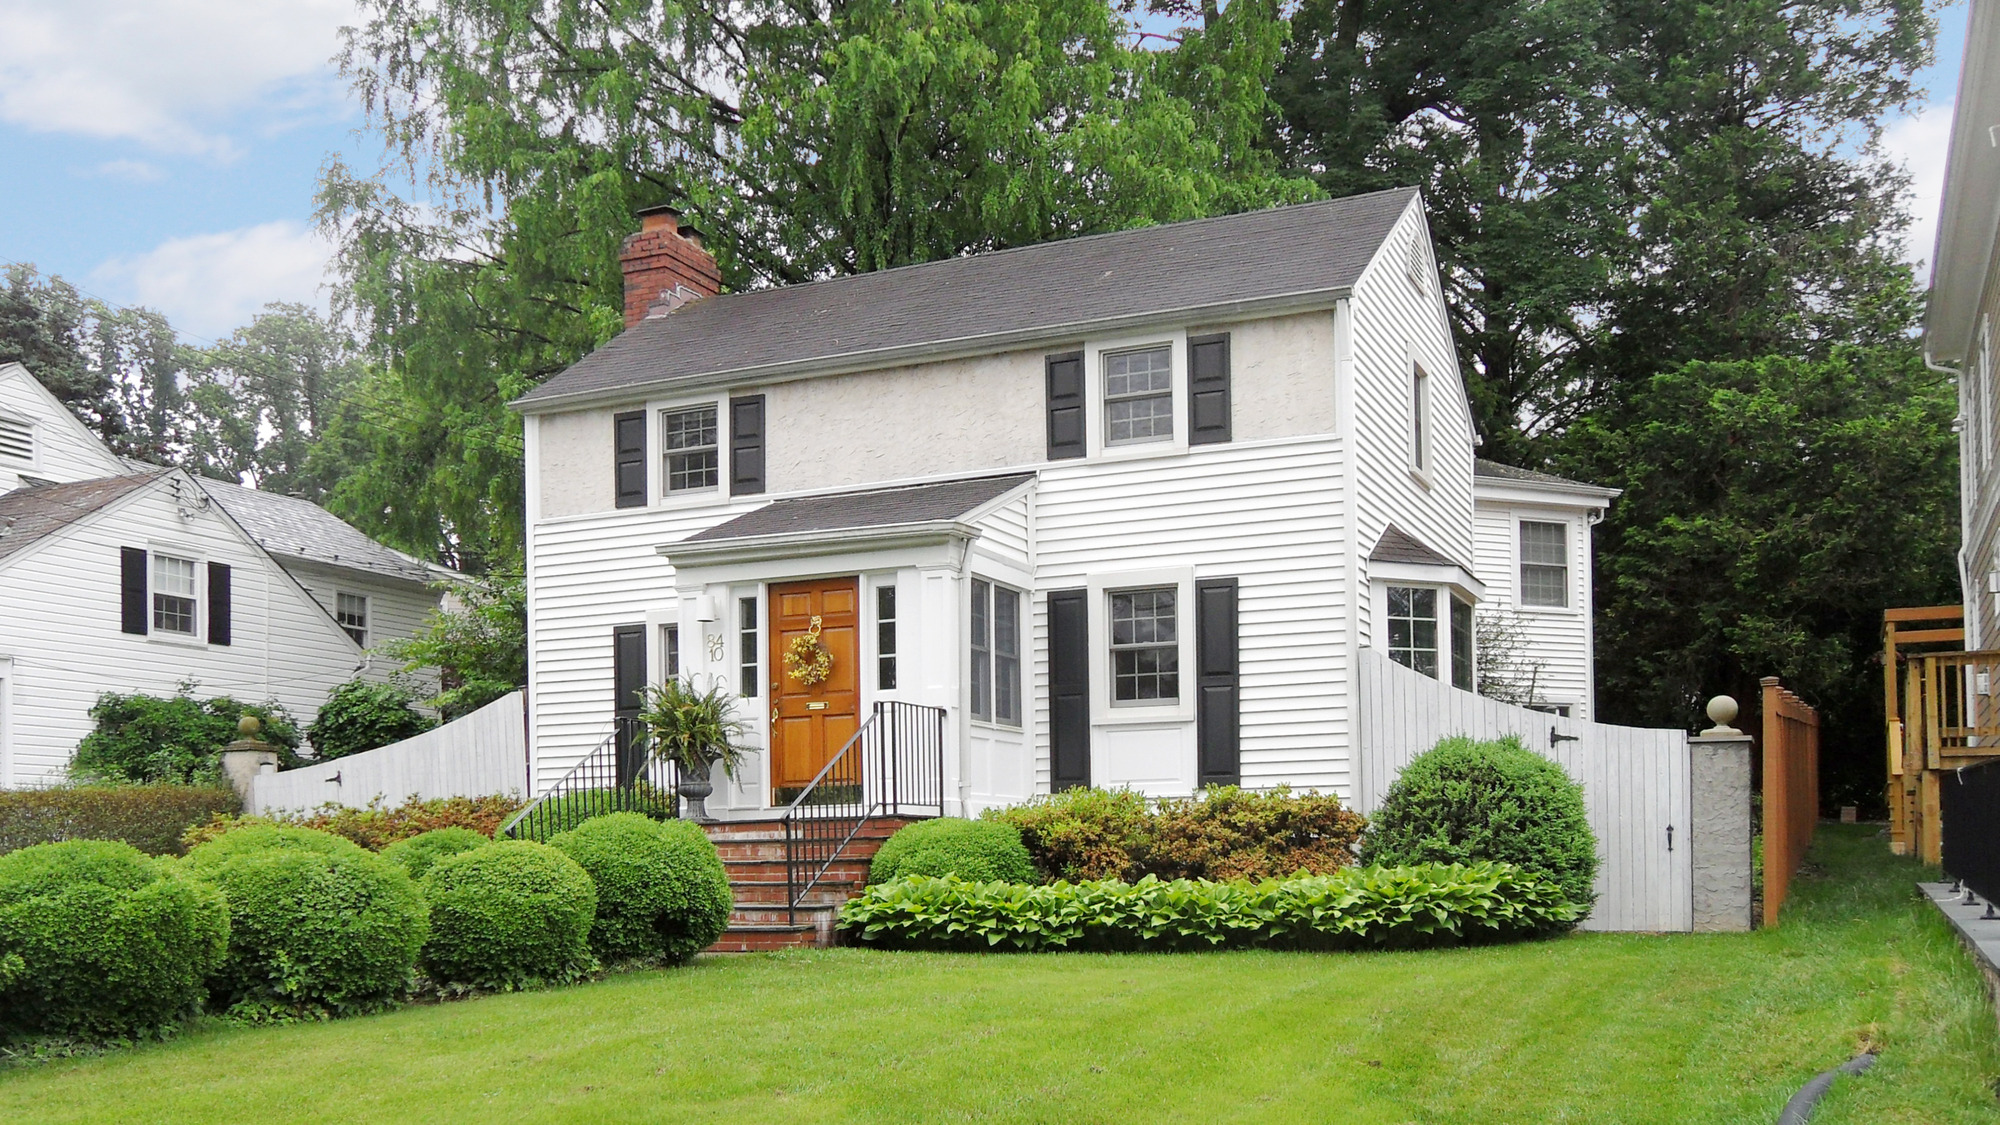 Homevisit Virtual Tour 8410 Lynbrook Dr Bethesda Md 20814 Listed By Catarina Bannier Marcie